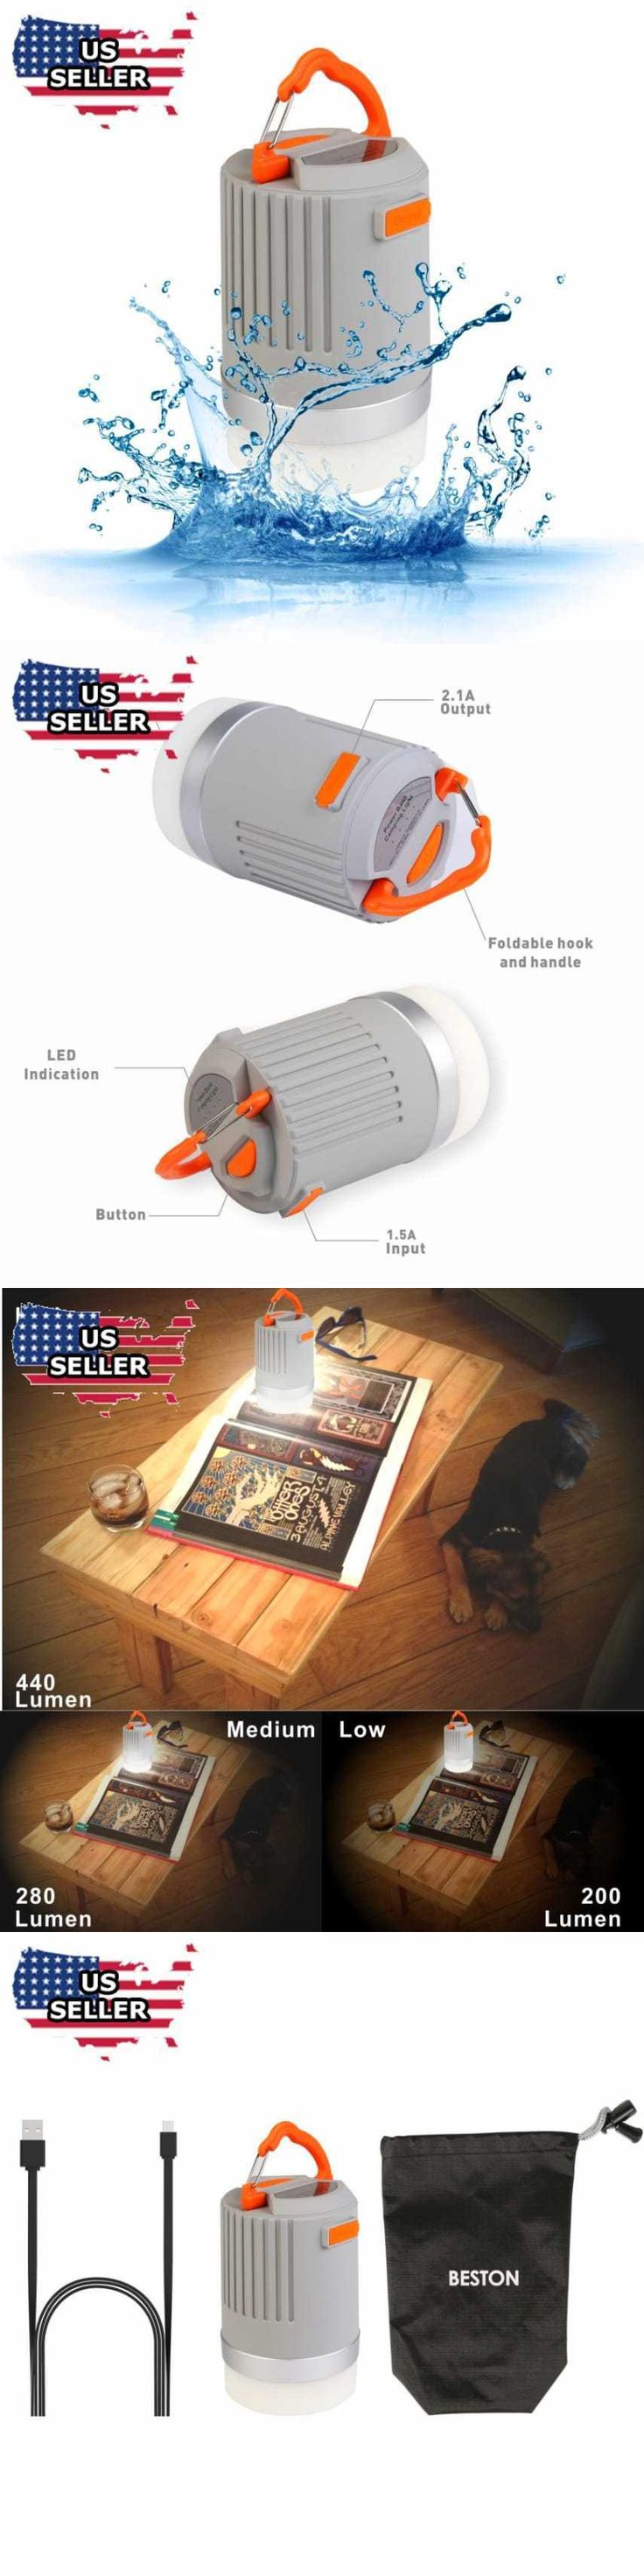 Lanterns 168867: Beston 440 Lumens Ip65 Waterproof Portable Rechargeable Led Camping Lantern New -> BUY IT NOW ONLY: $47.83 on eBay!